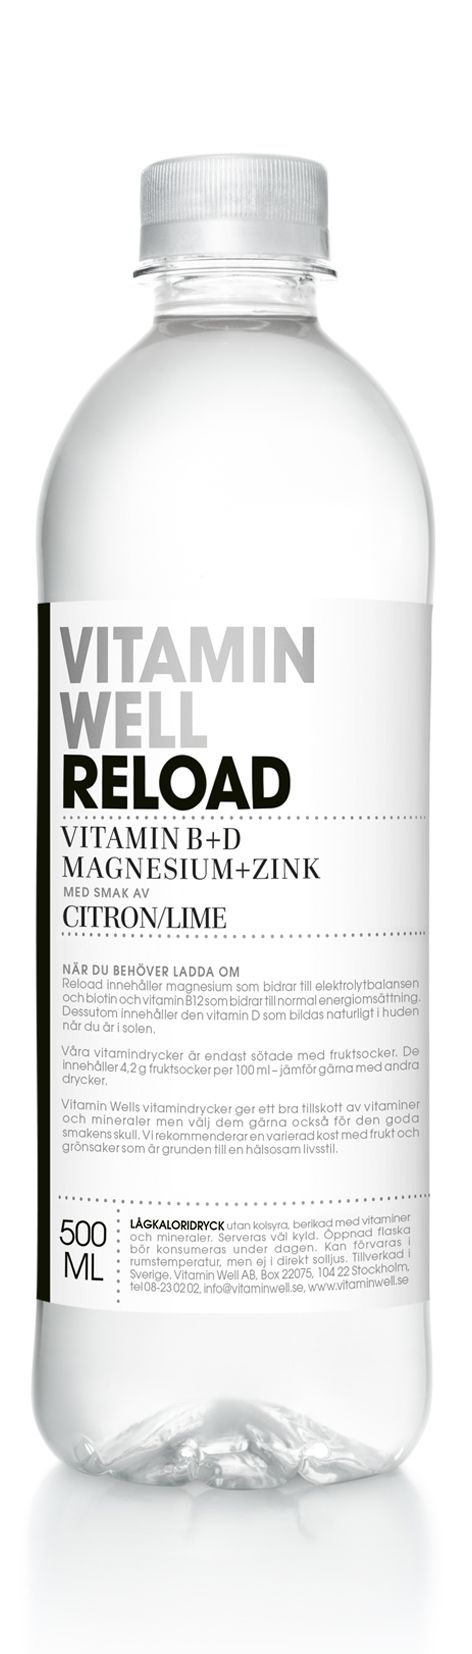 WHEN YOU NEED TO RELOAD - WITH A TASTE OF LEMON/LIME  Vitamin Well Reload contains magnesium for the body´s electrolyte balance, along with biotin and B12 which helps to maintain a normal energy-yielding metabolism. It also contains vitamin D, which is produced naturally in the skin when exposed to the sun.